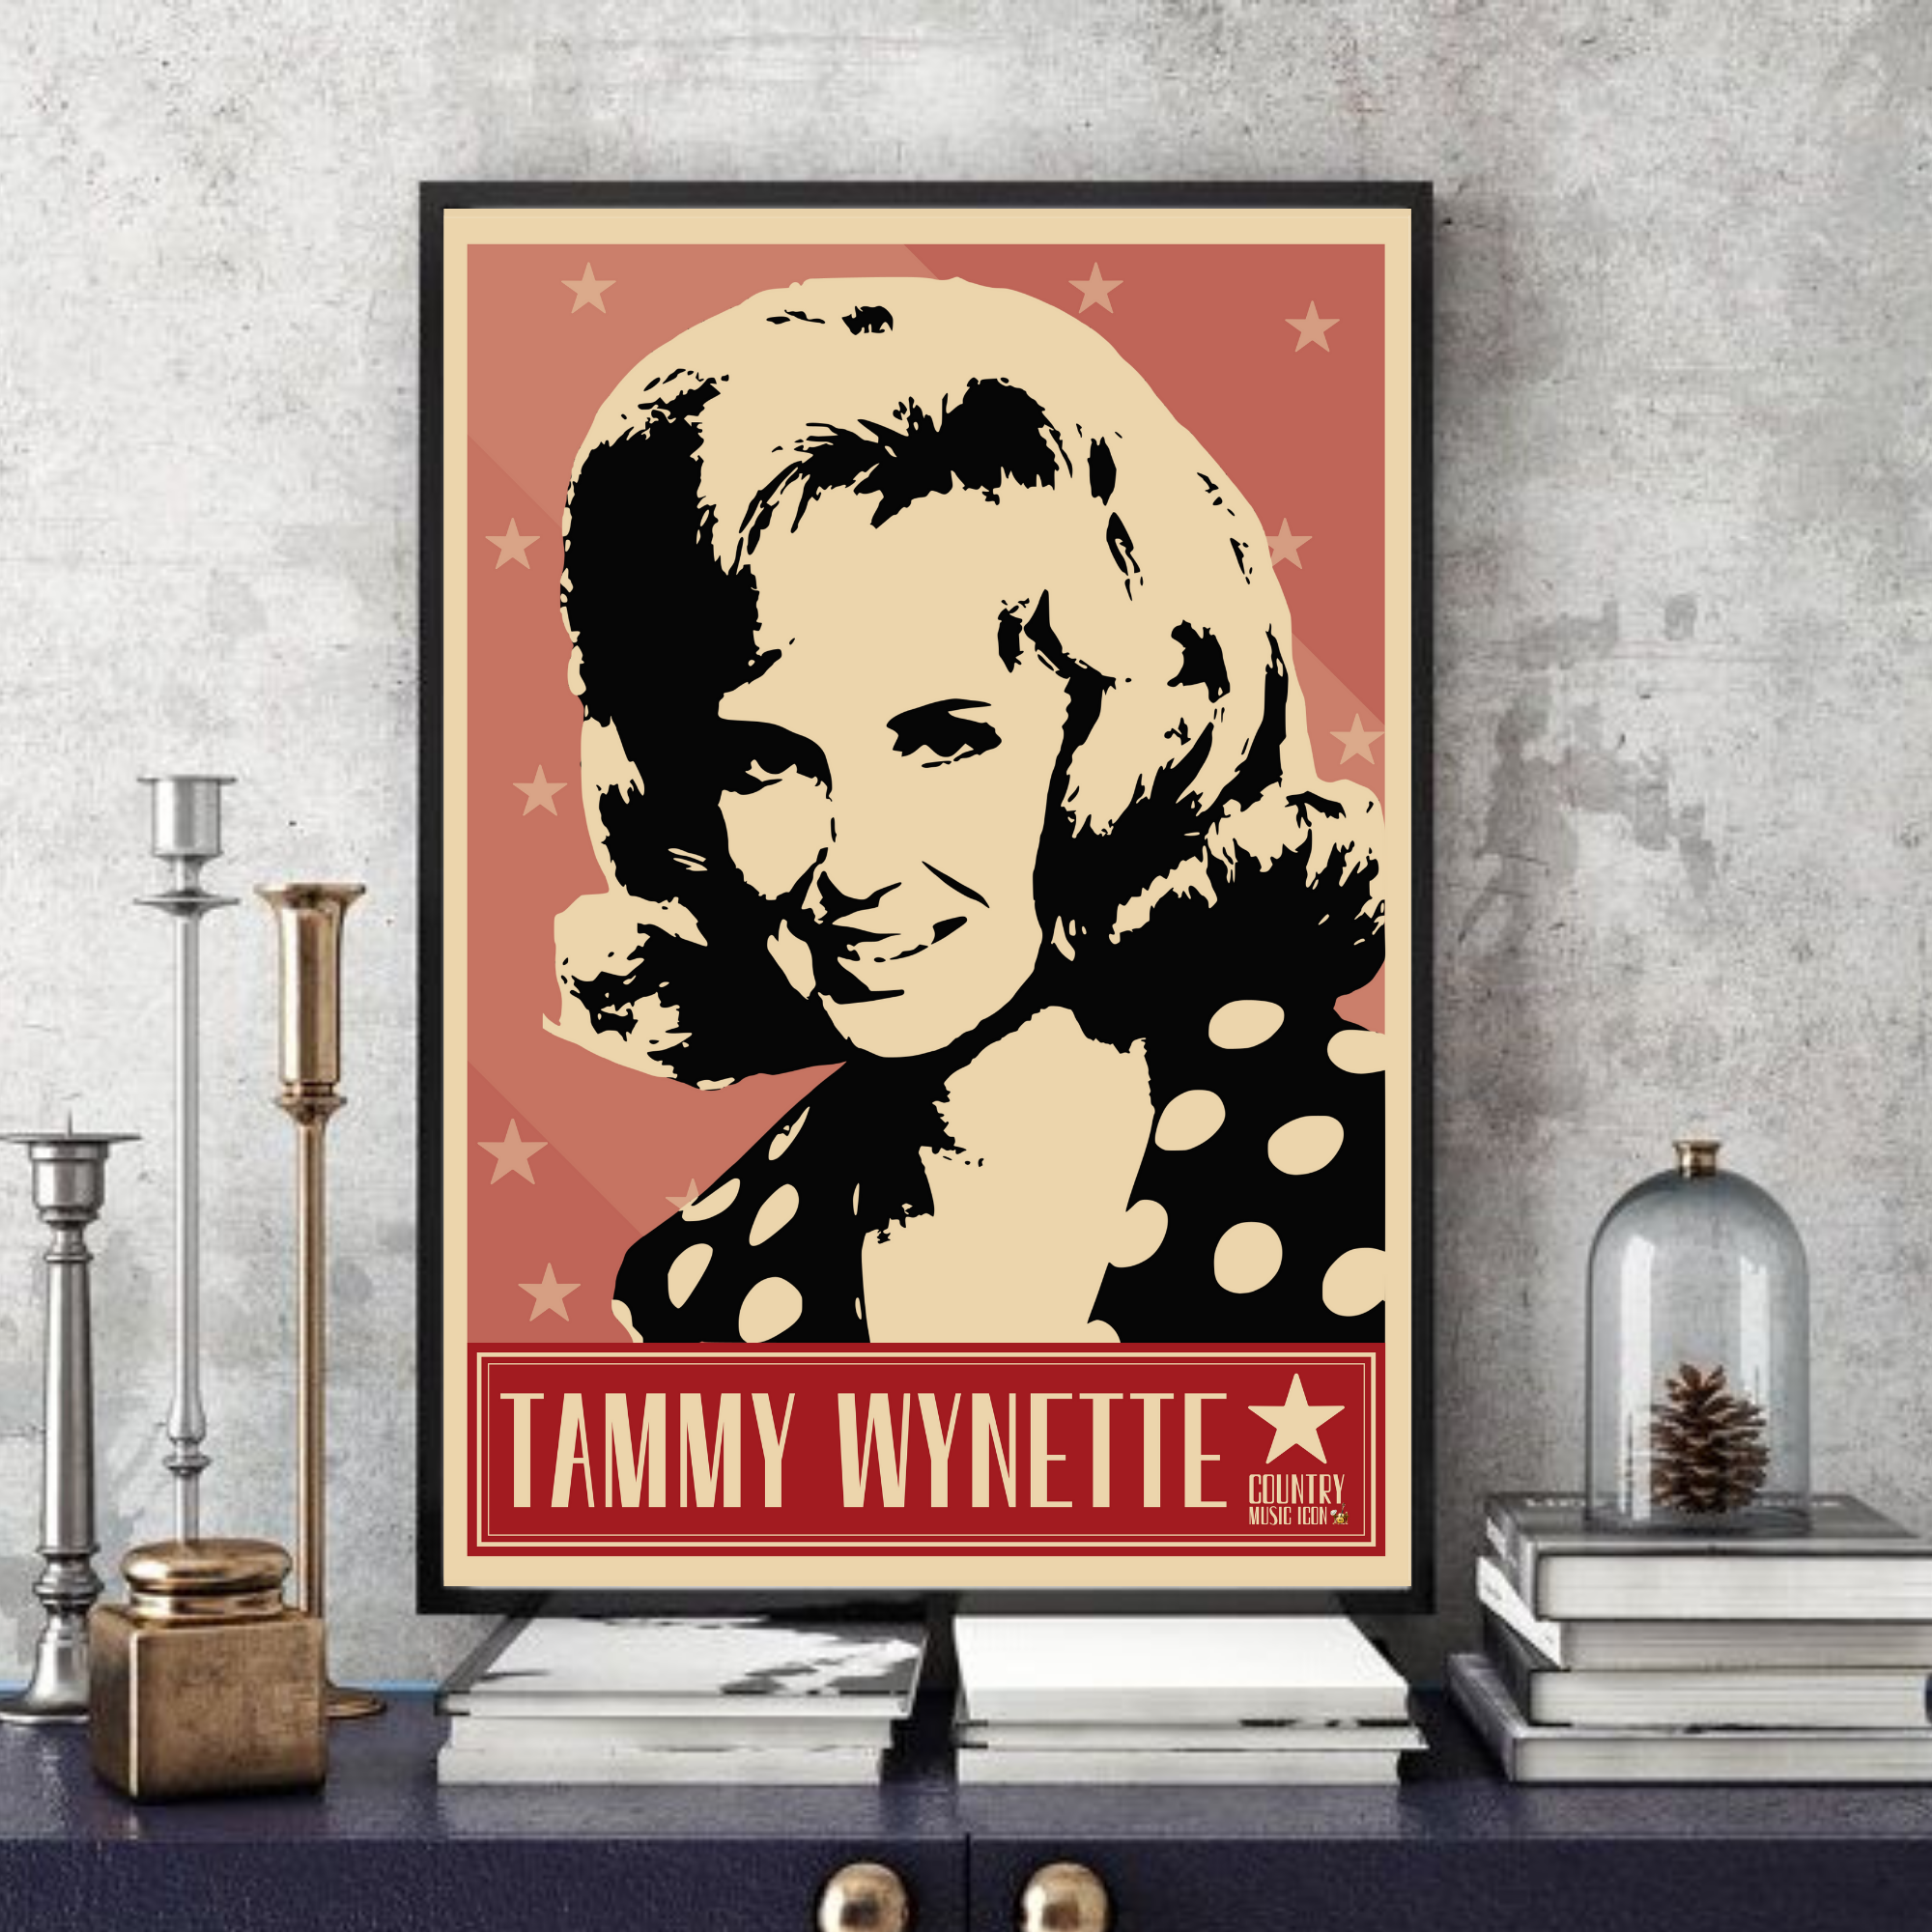 Tammy Wynette / Country music legend - Pop Art - Collectable/Memorabilia/Gift/Print